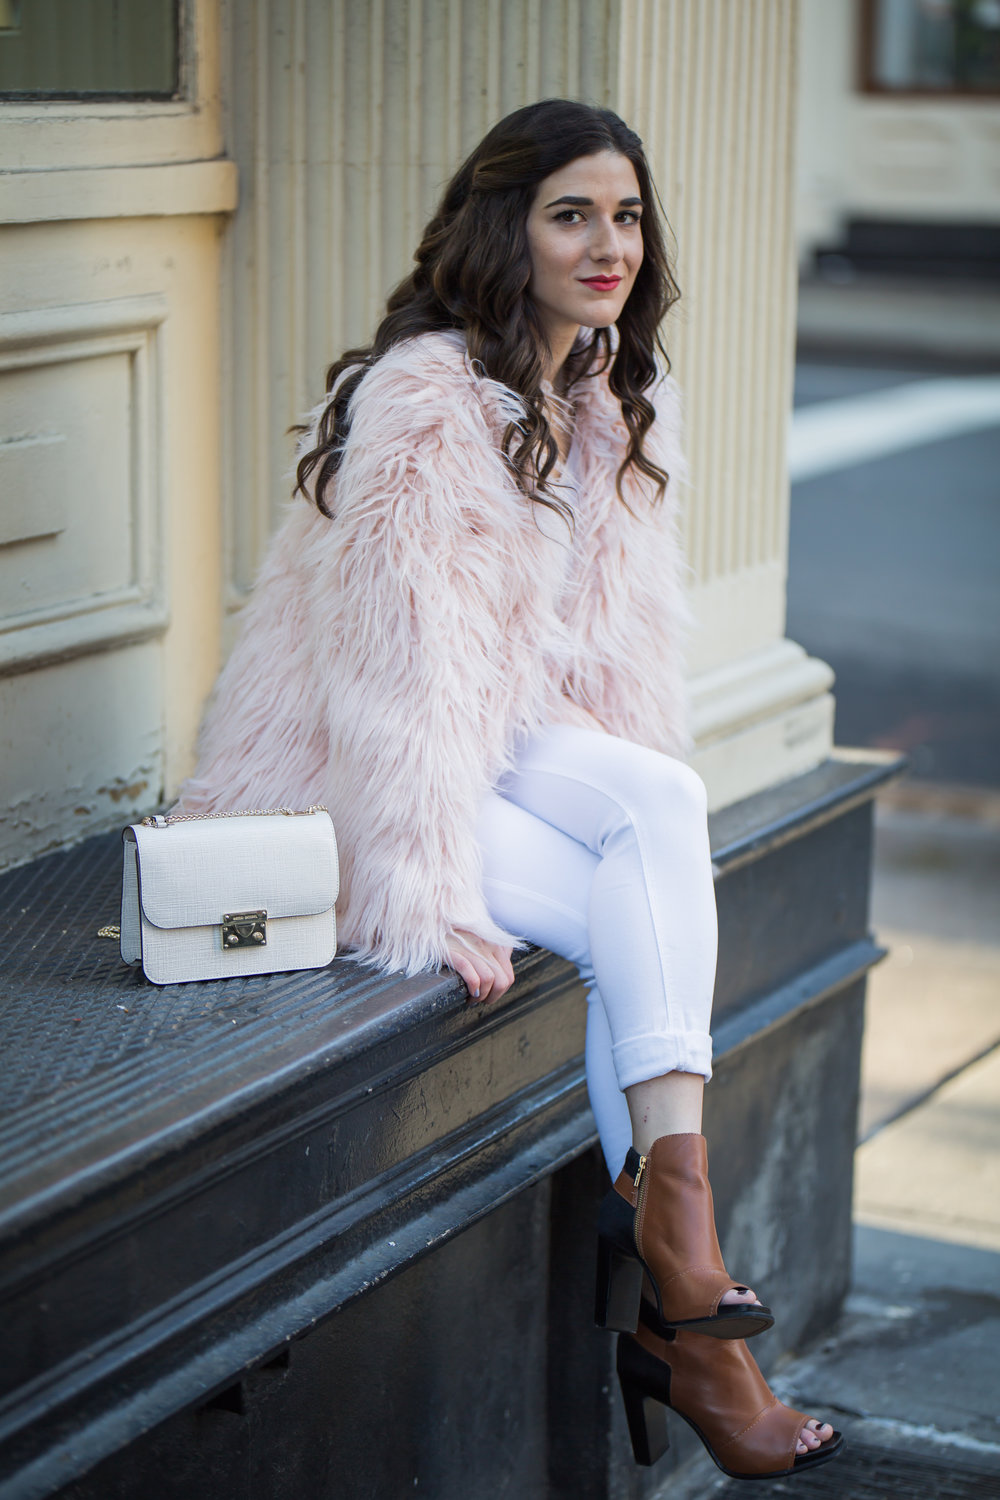 Pink Faux Fur Jacket White Jeans The Best Career Advice Esther Santer Fashion Blog NYC Street Style Blogger Outfit OOTD Trendy Winter Whites Henri Bendel Bag Tan Booties Girl Women Shop Sale Hair What To Wear Wearing Photoshoot Model Accessories Shoes.jpg